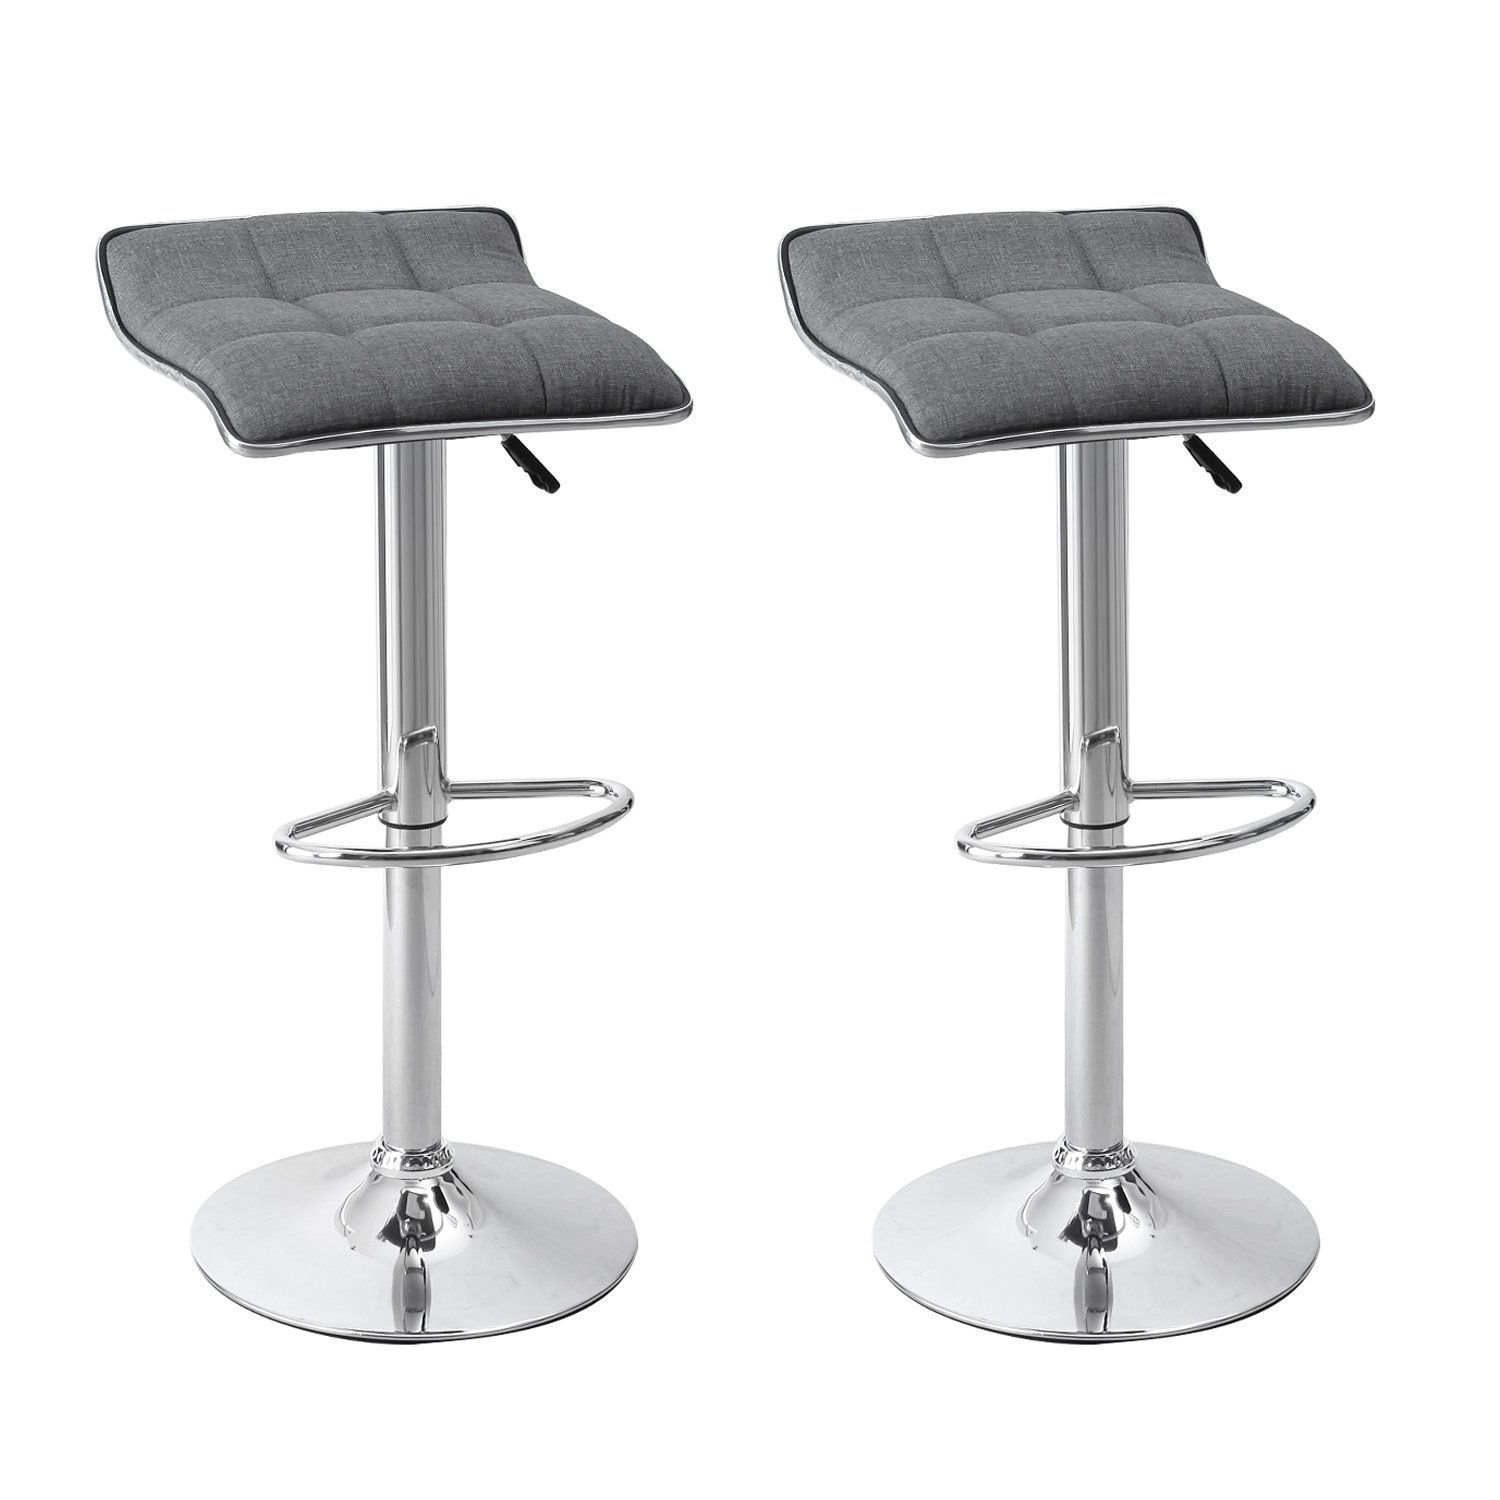 Amazon.com: Asense Backless Linen Fabric Curved Square Shape Adjustable Bar-stools (Set of Two)NEW 2016 ARRIVAL (Grey): Home & Kitchen